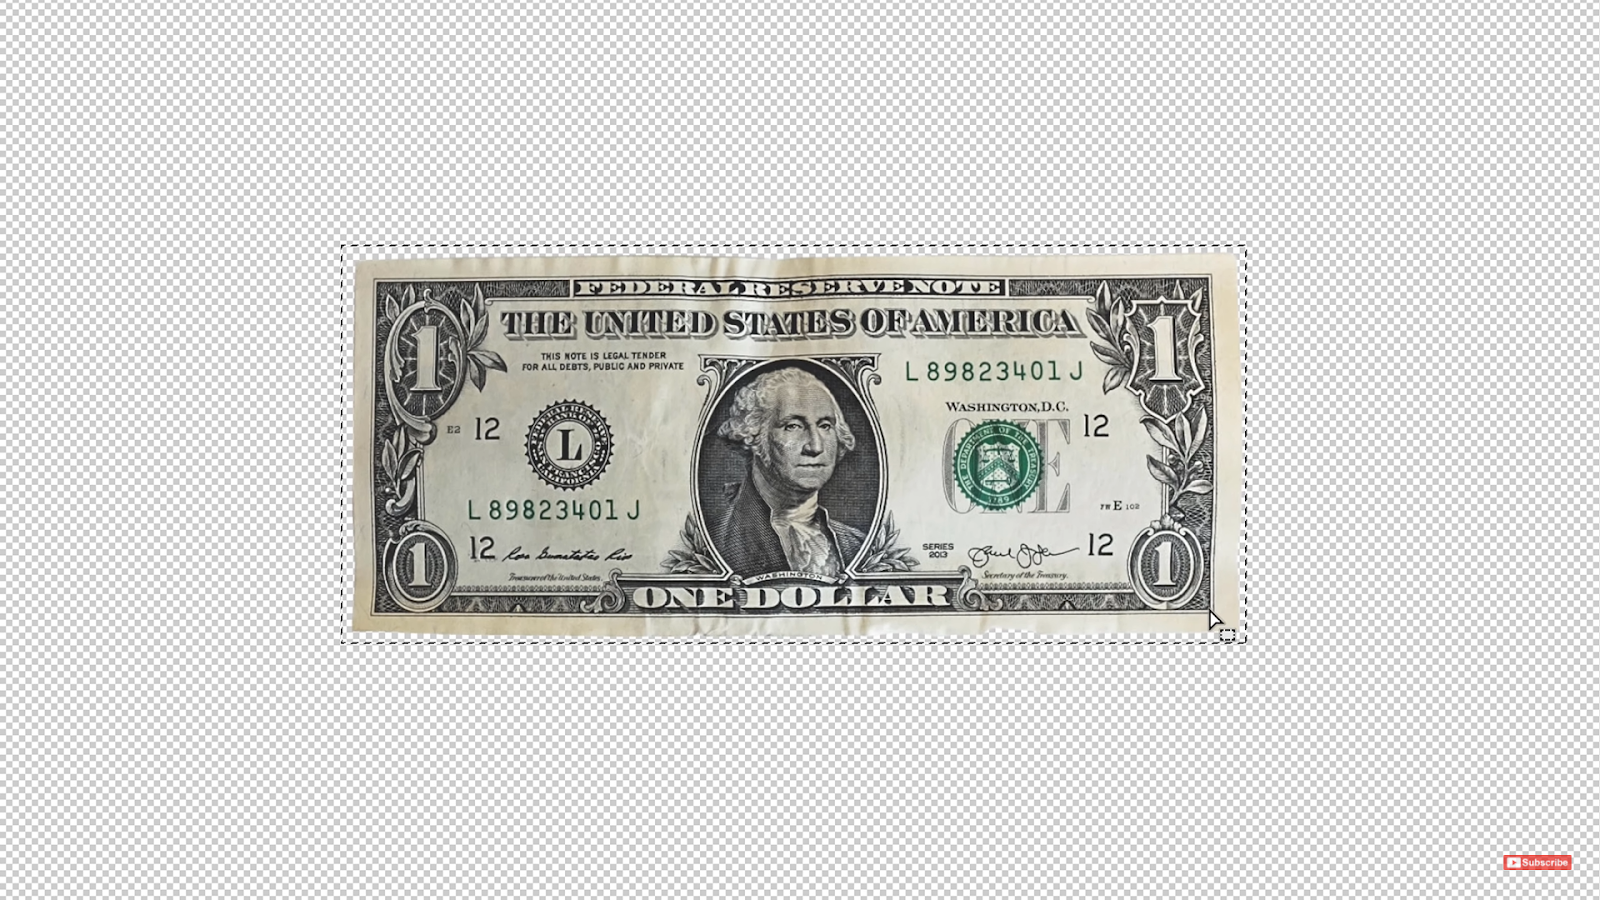 Use the Rectangular Marquee tool to create a selection around the Dollar bill